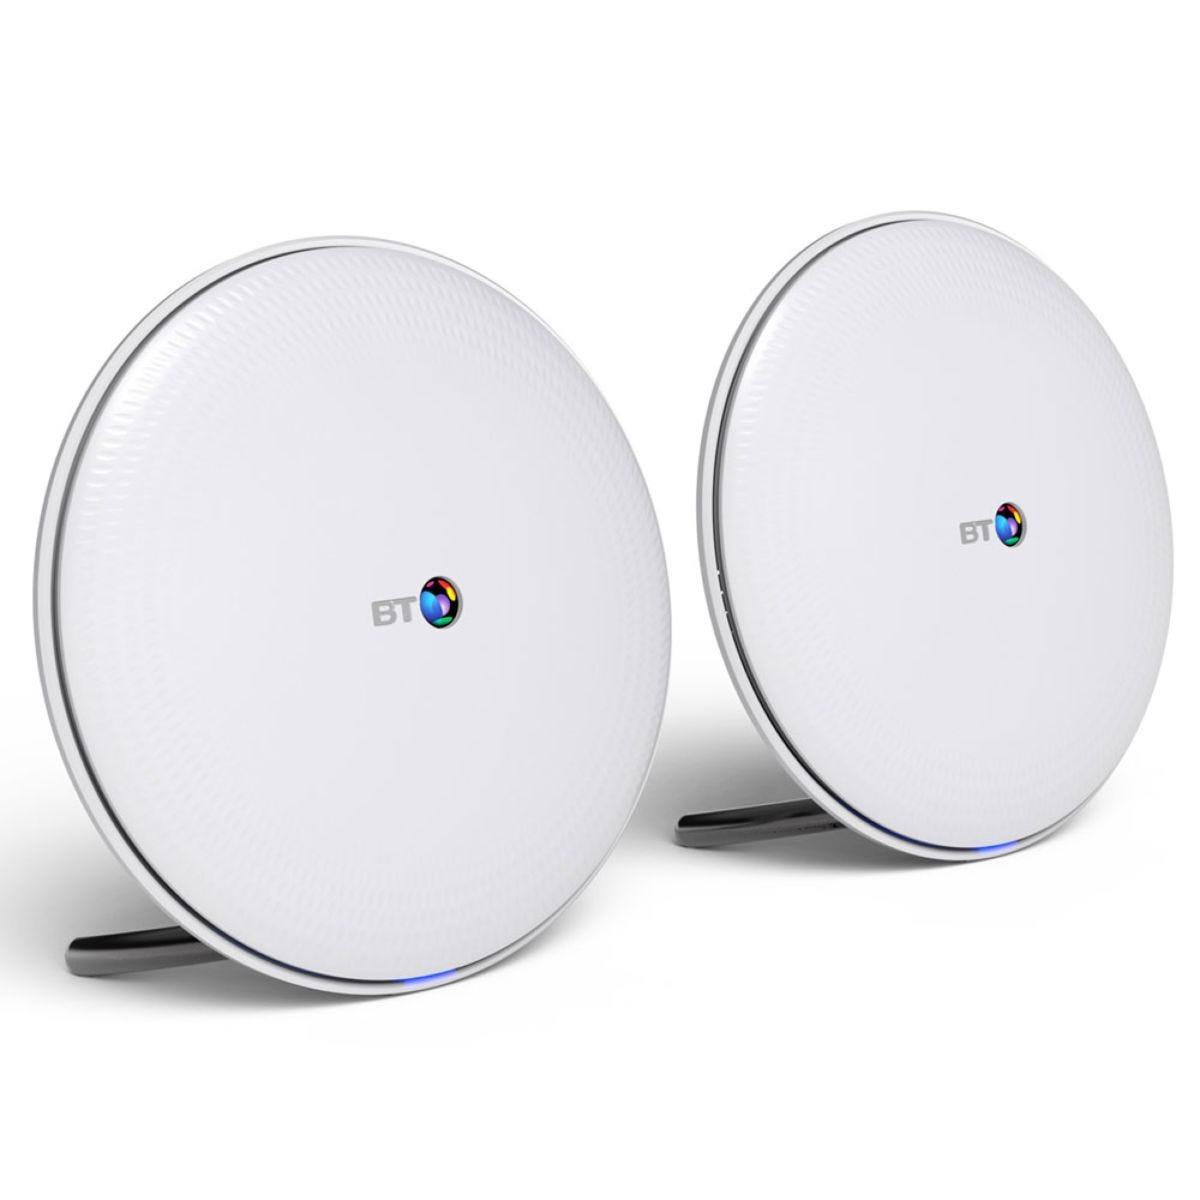 BT Whole Home Wi-Fi System - Twin Pack